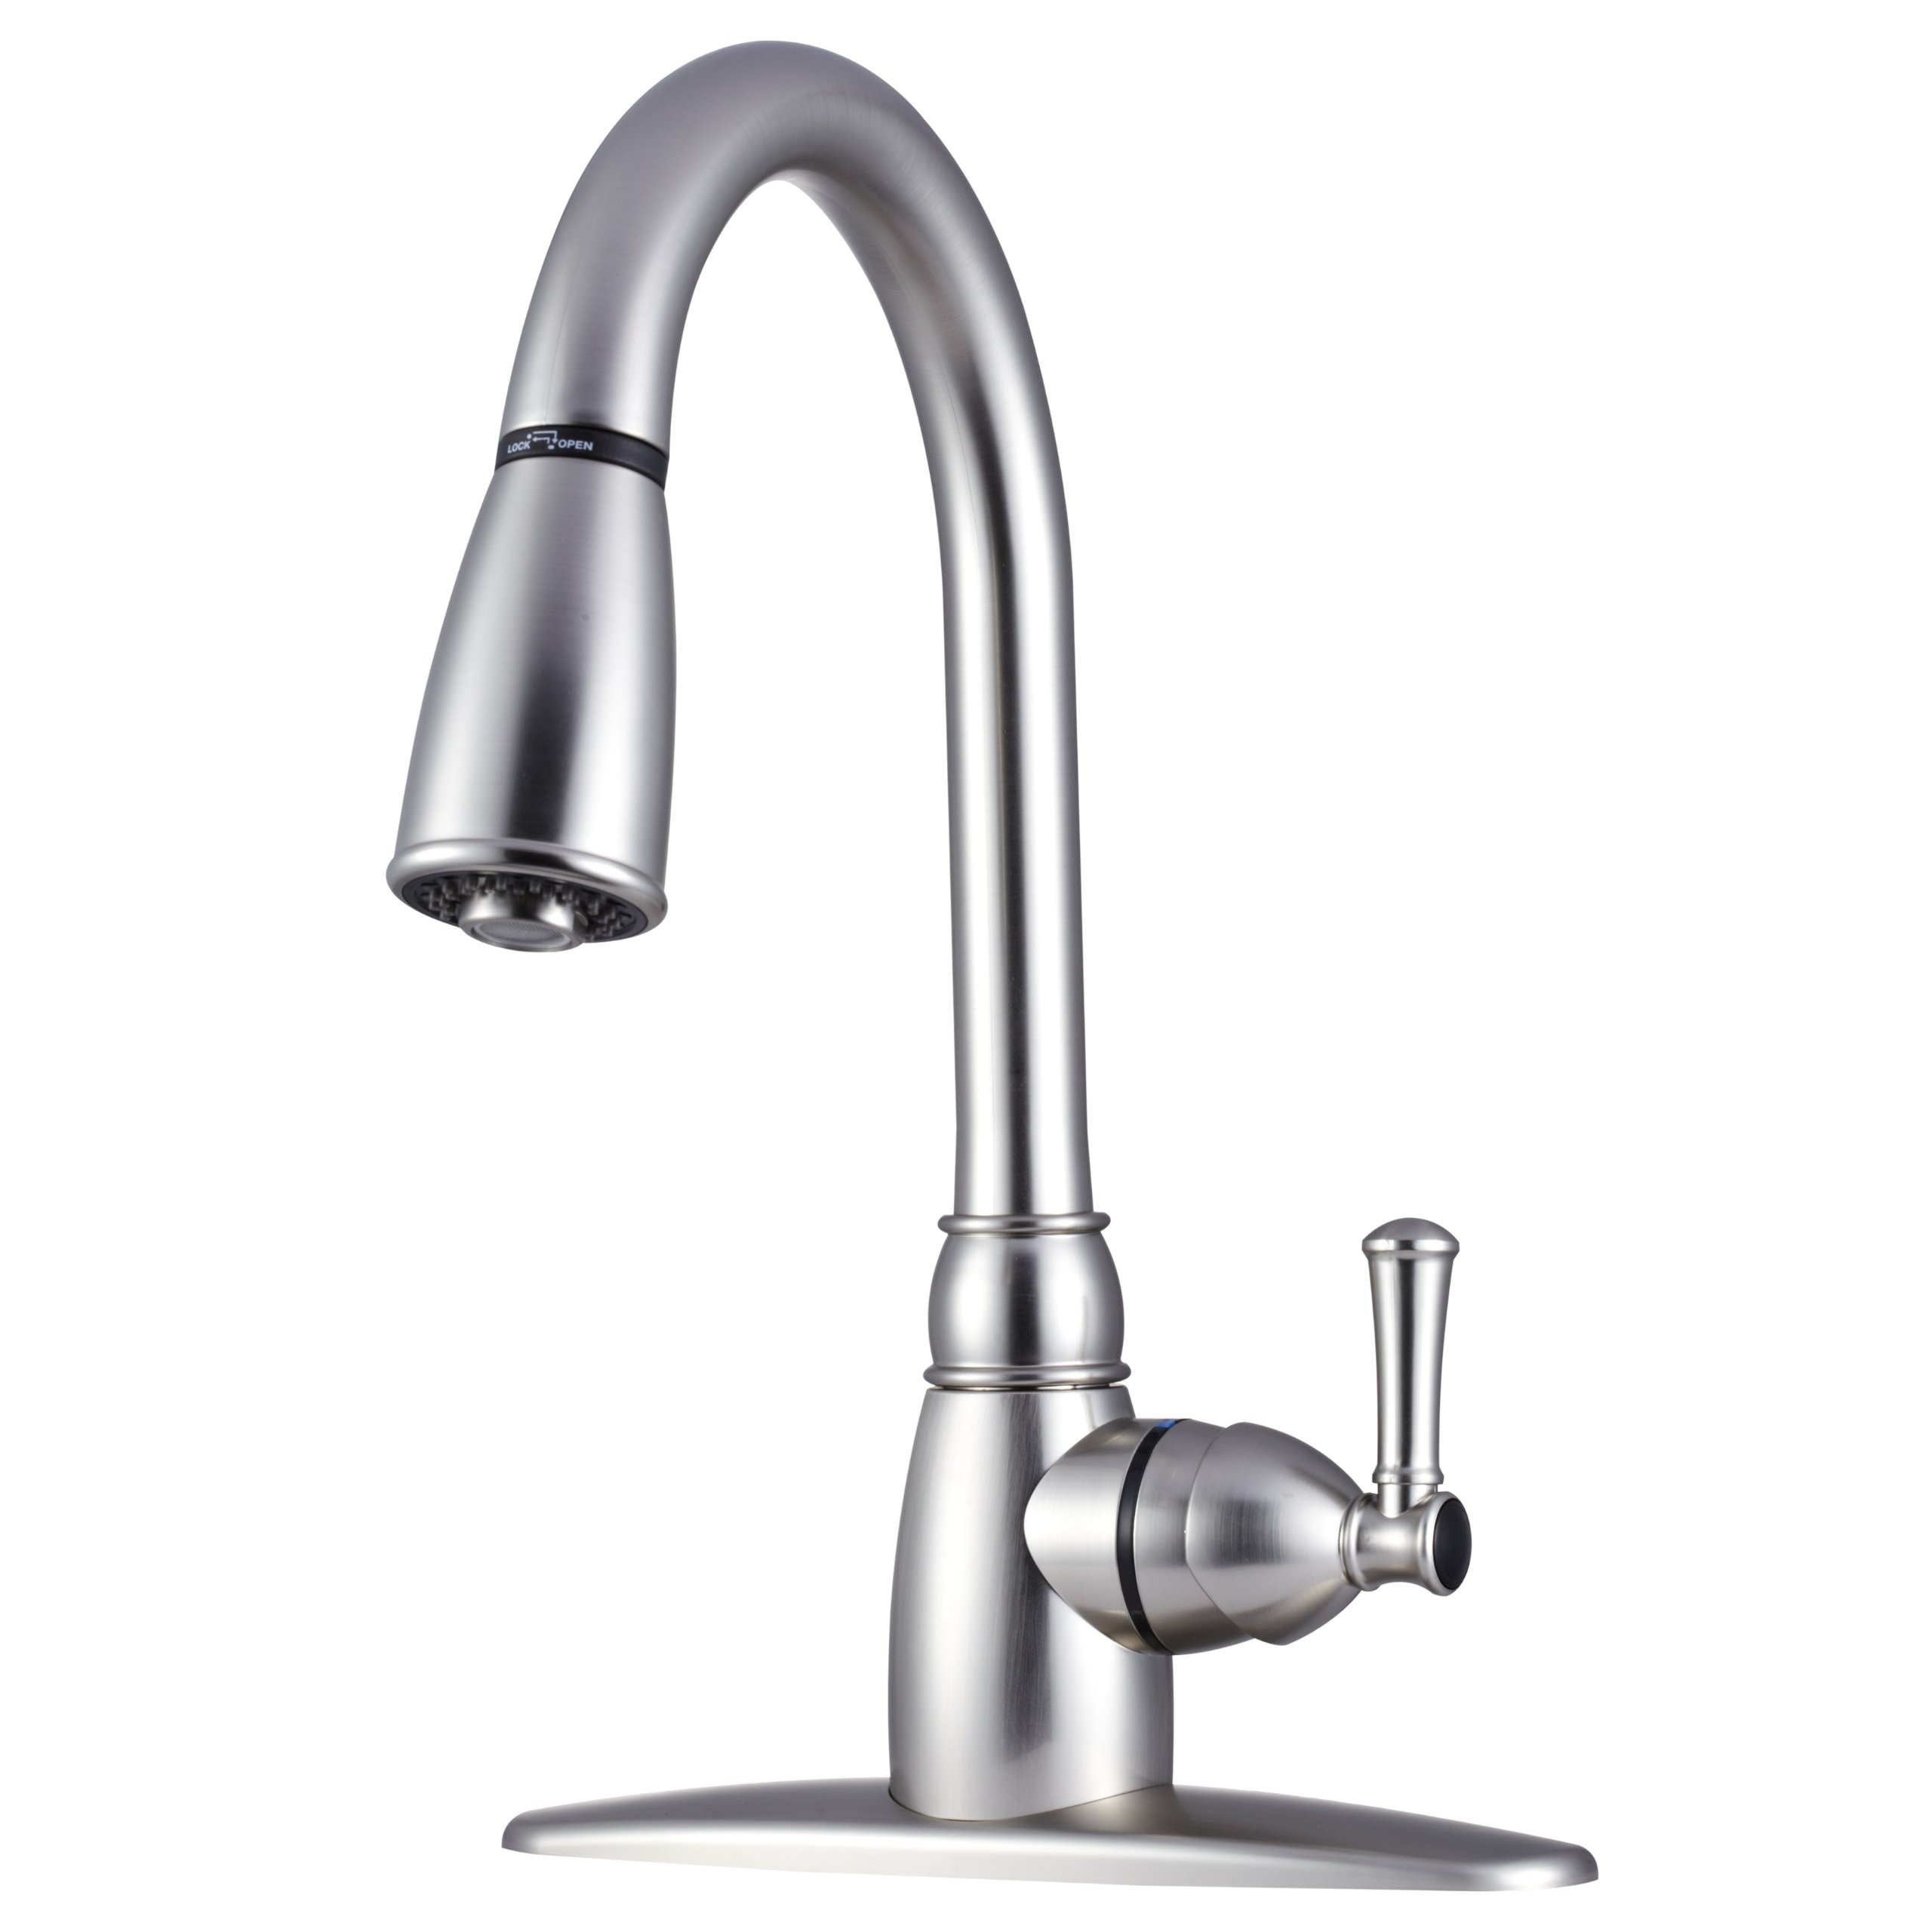 Dura Faucet DF-PK160-SN Non-Metallic Pull-Down Rv Kitchen Faucet - Brushed Satin Nickel